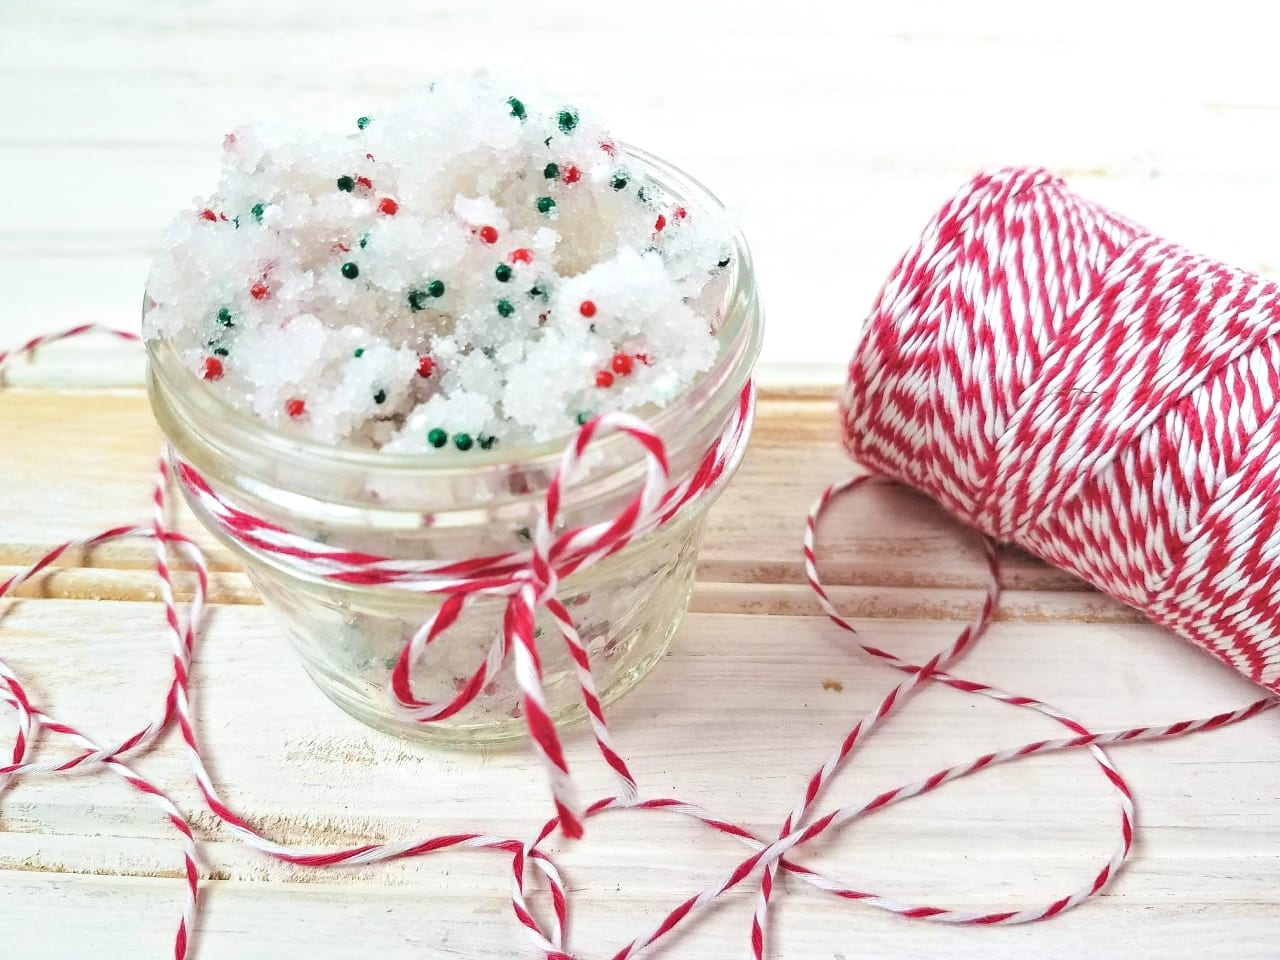 Bring your favorite Christmas sugar cookie into your beauty routine with this super simple sugar scrub recipe. You'll love the amazing scent of baking Christmas cookies while leaving your skin super soft at the same time!